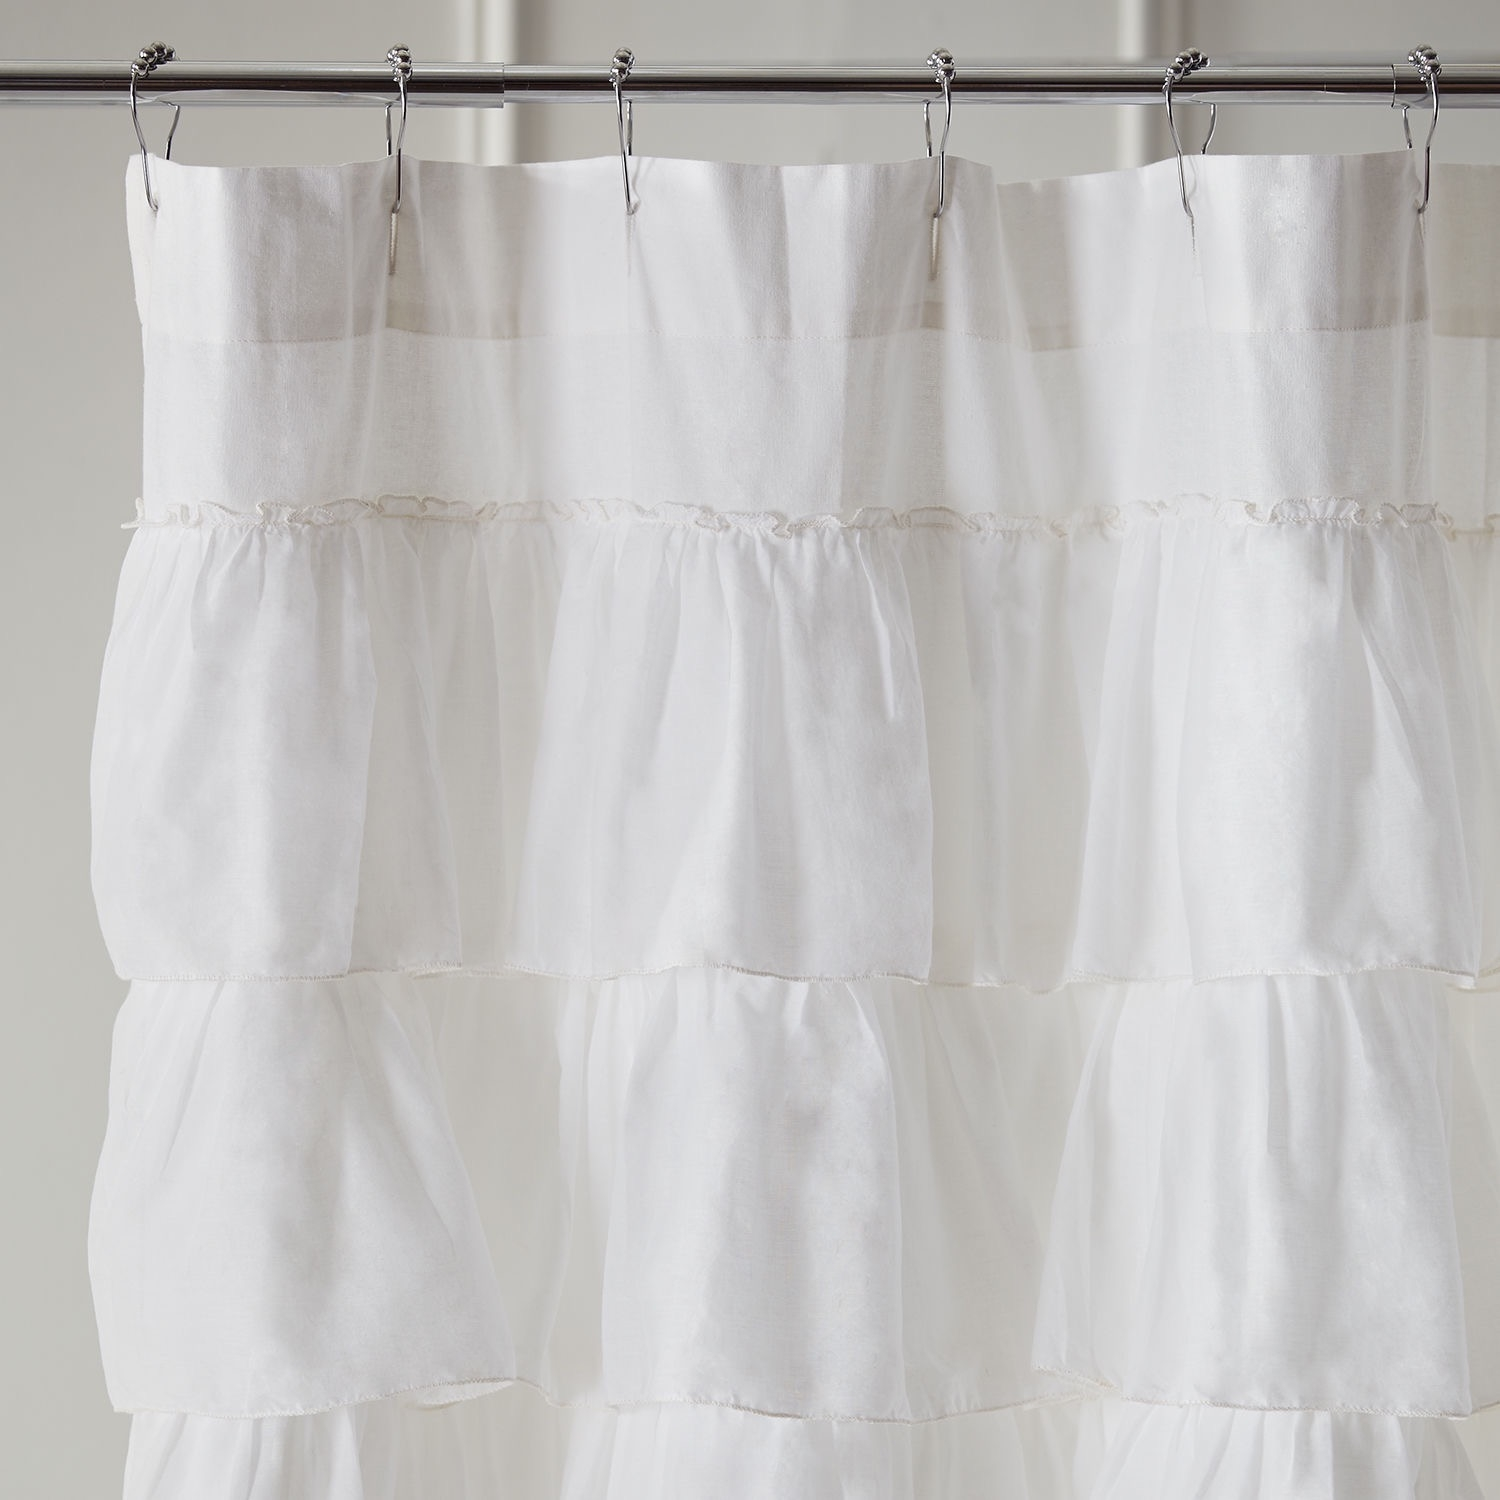 Bathroom Awesome White Ruffle Shower Curtain For Excellent Inside Peach Colored Curtains (Image 5 of 25)